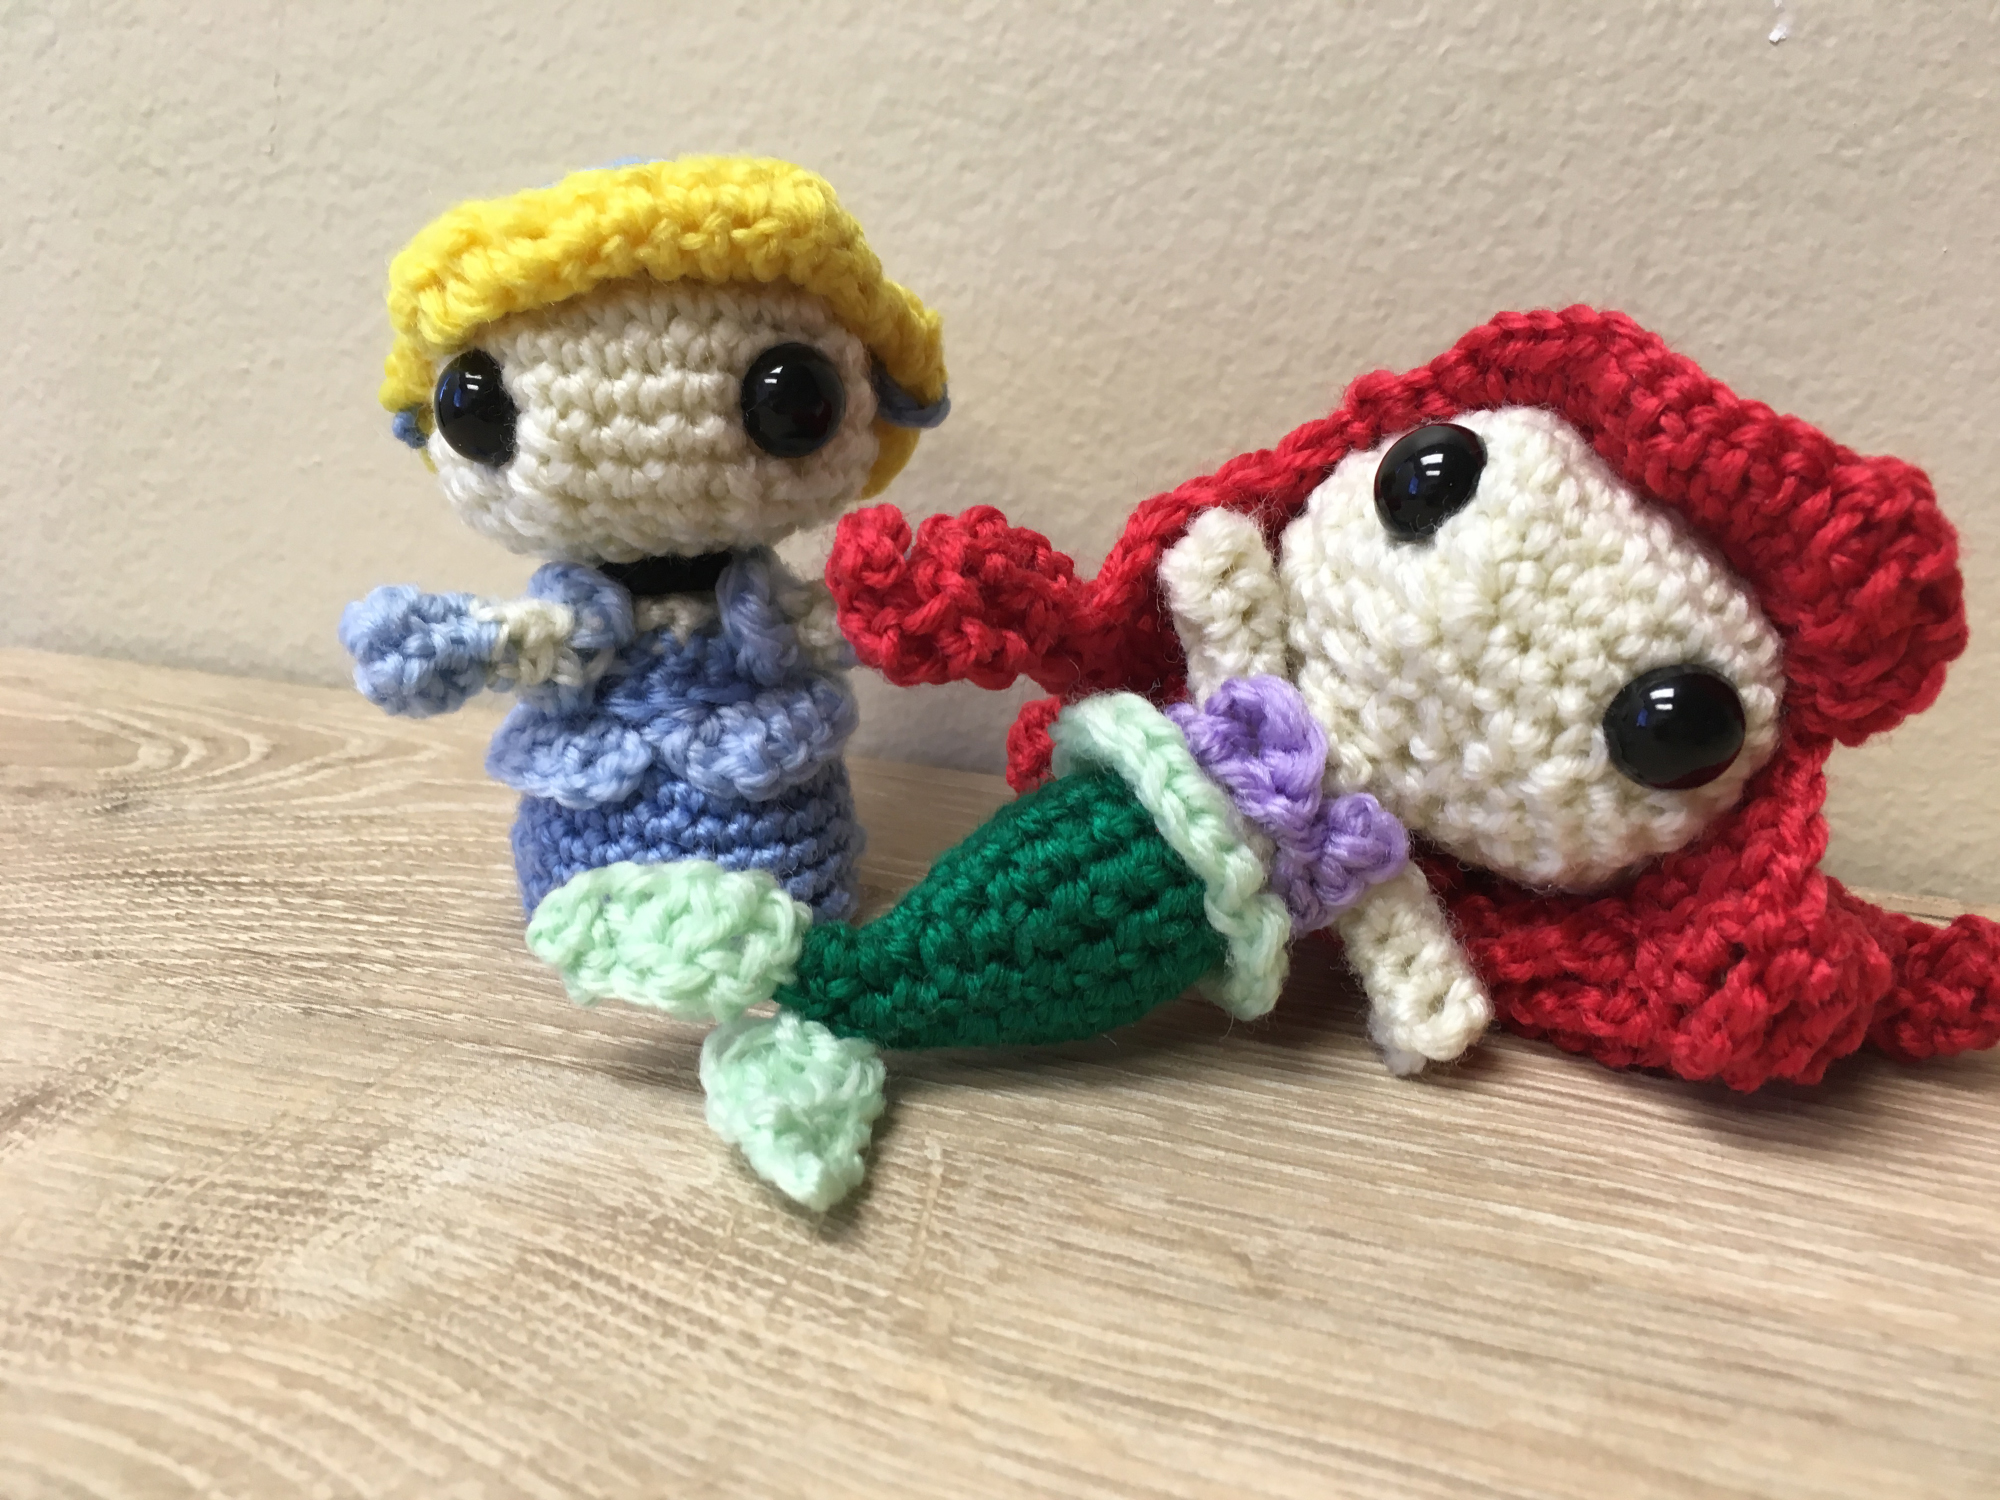 Crochet Pattern Review Archives Stacys Stitches